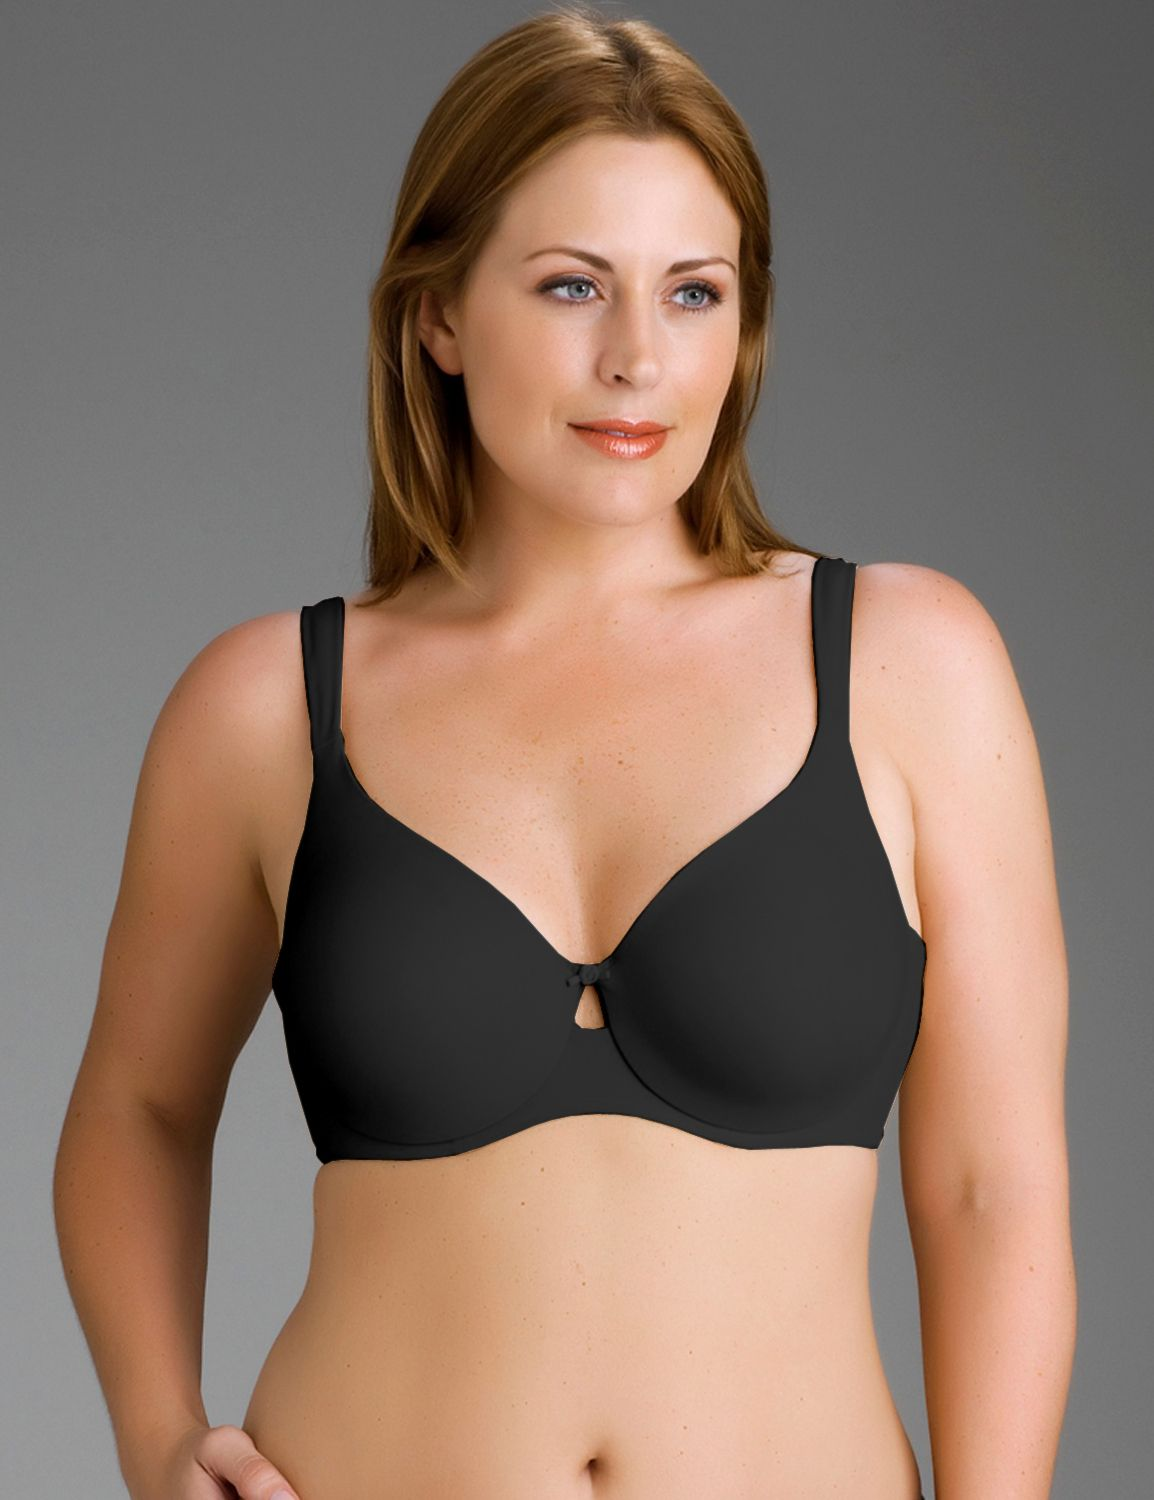 Lane Bryant Womens Full Coverage Convertible Bra 46DDD Black